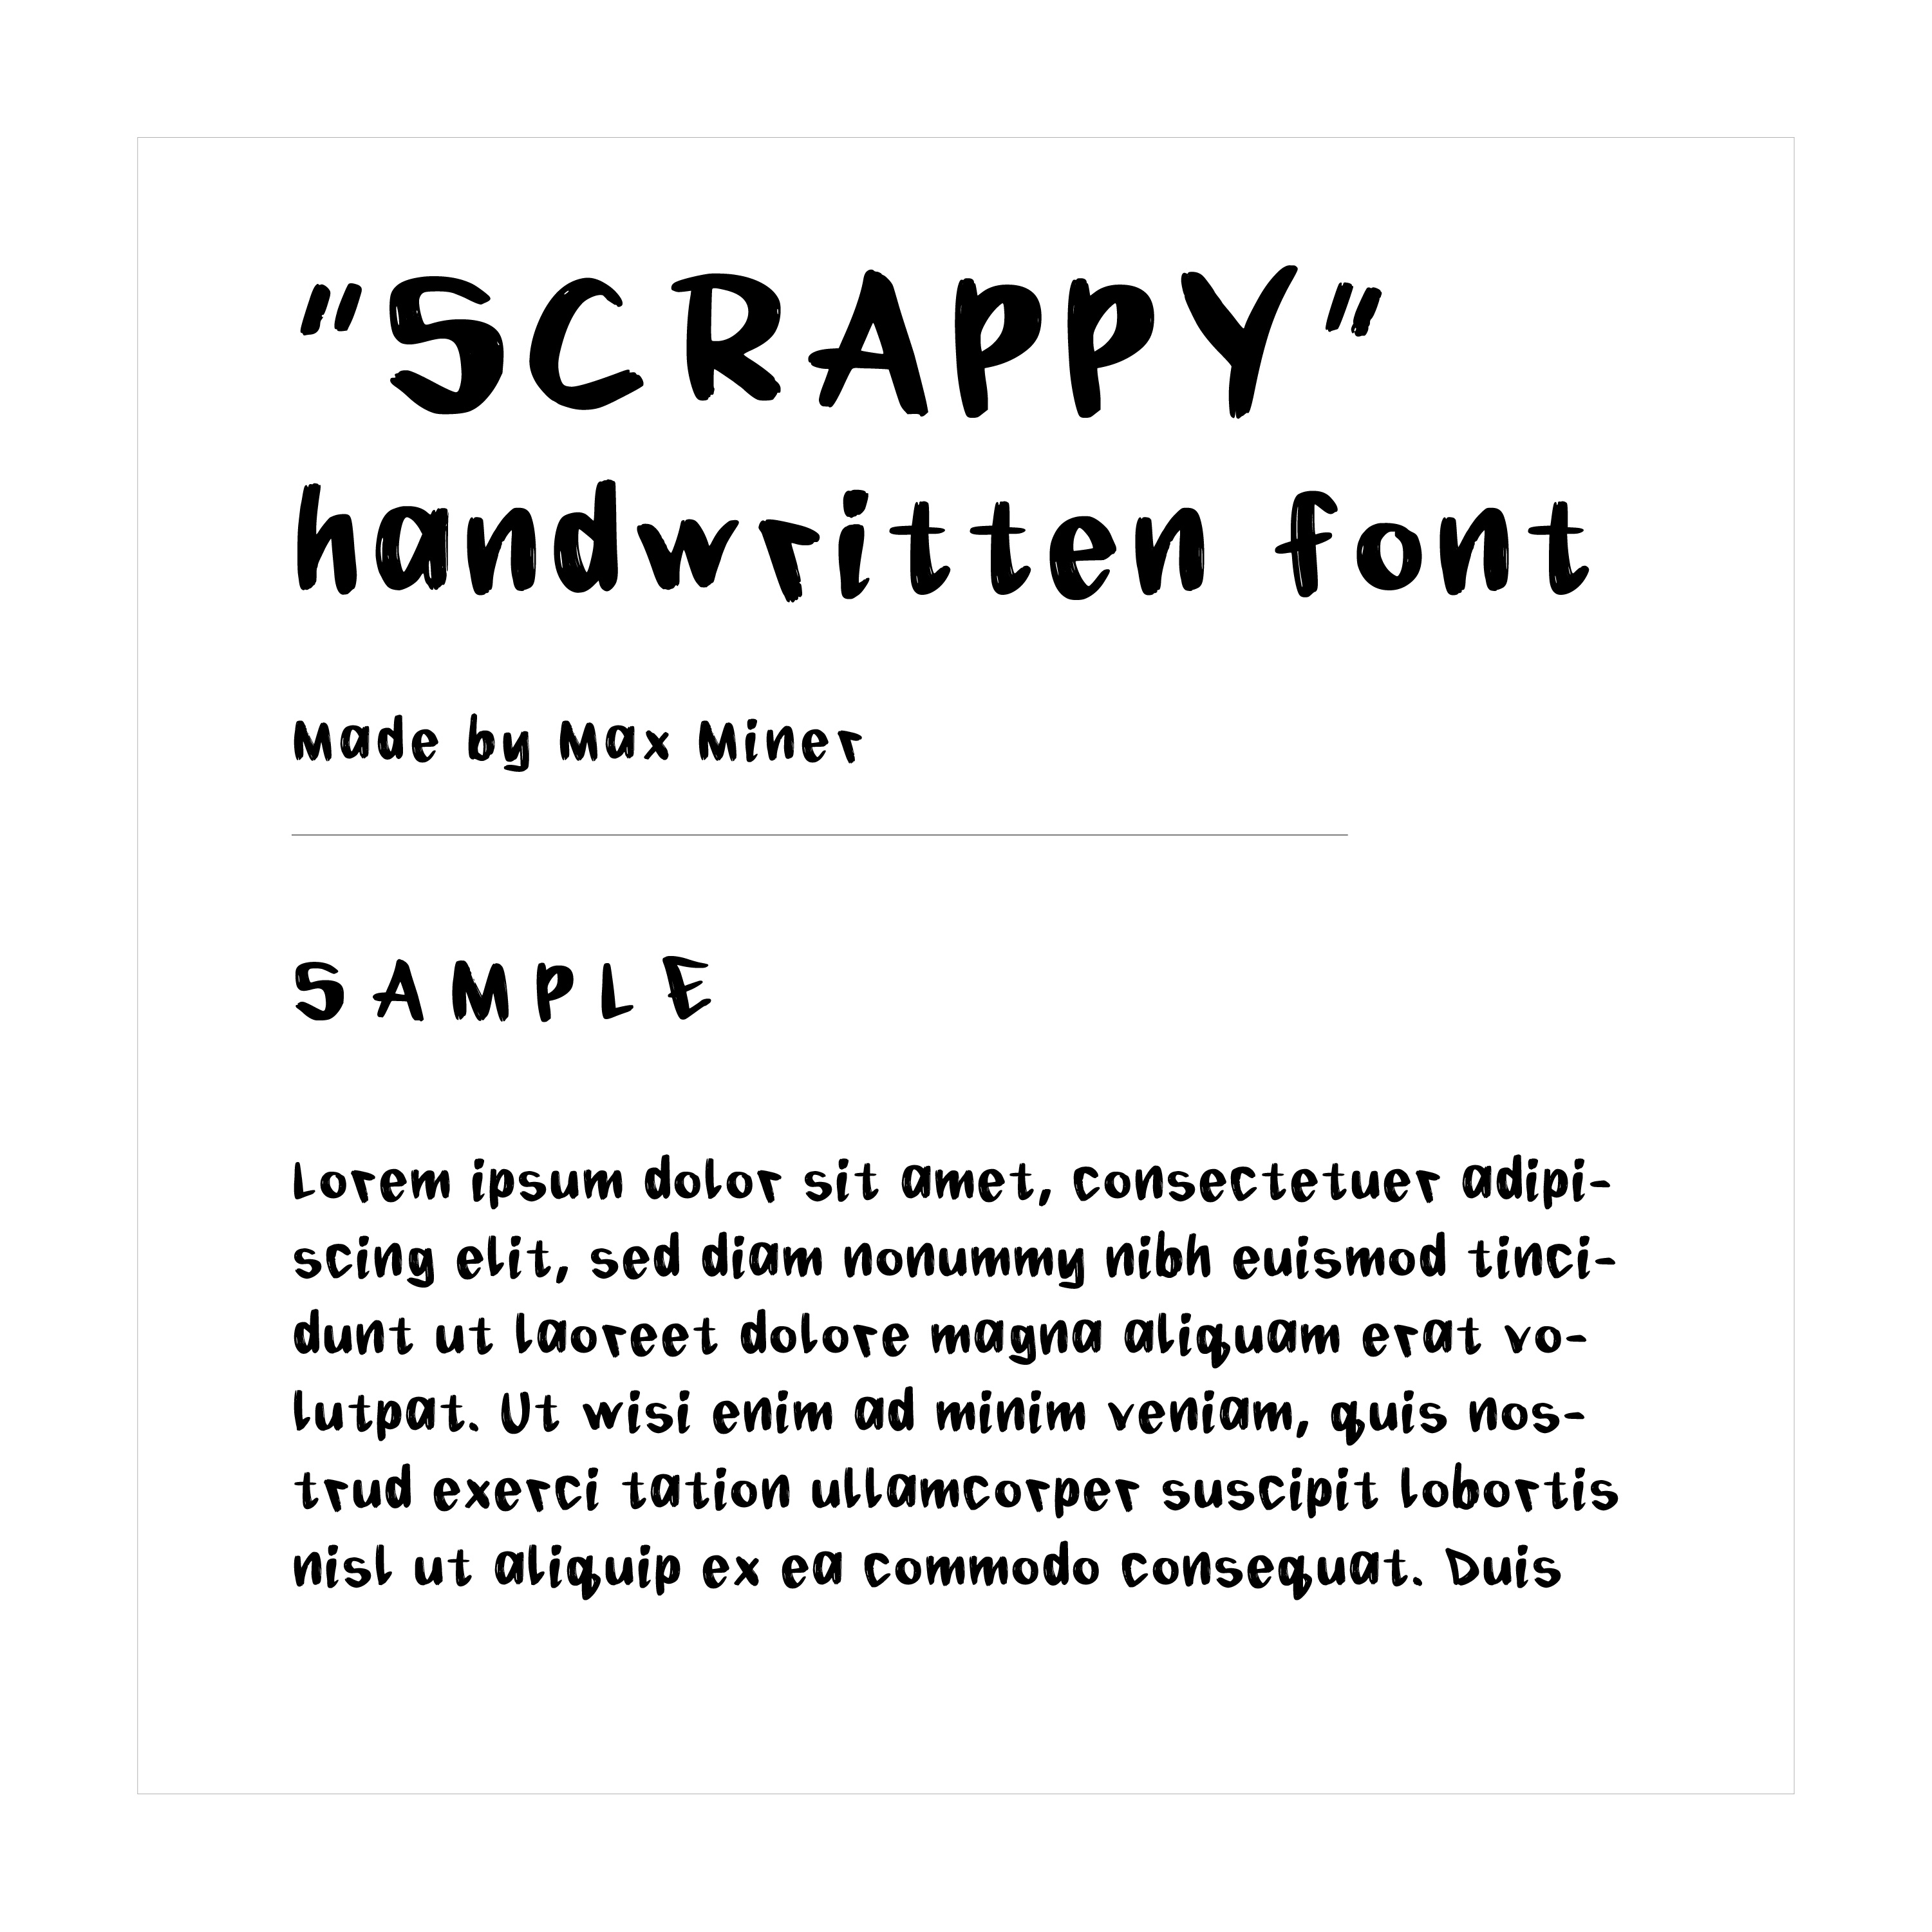 """""""Scrappy"""" hand written font example text"""